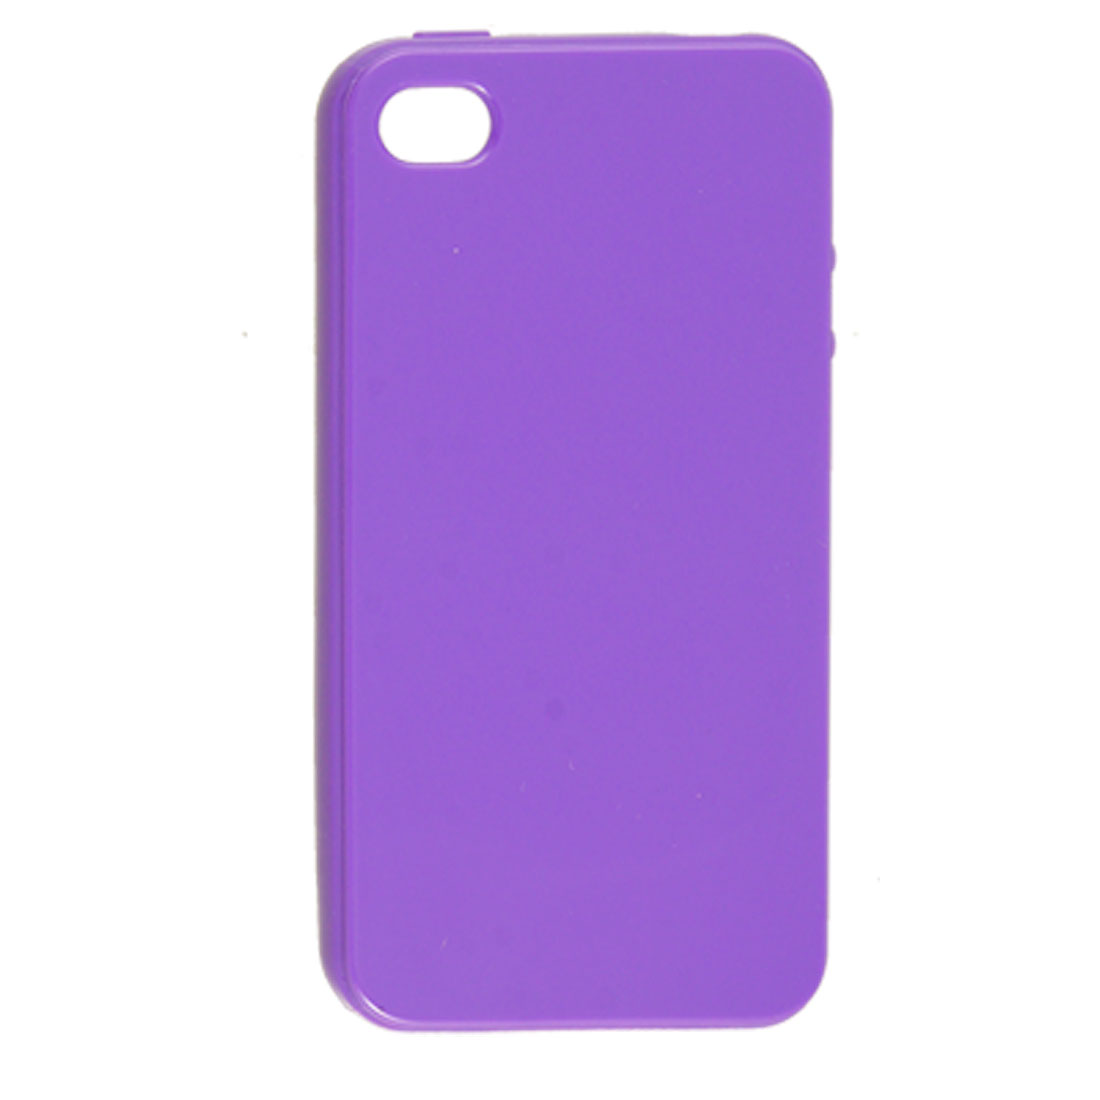 Anti Dust Purple Soft Plastic Case Cover for Apple iPhone 4 4G